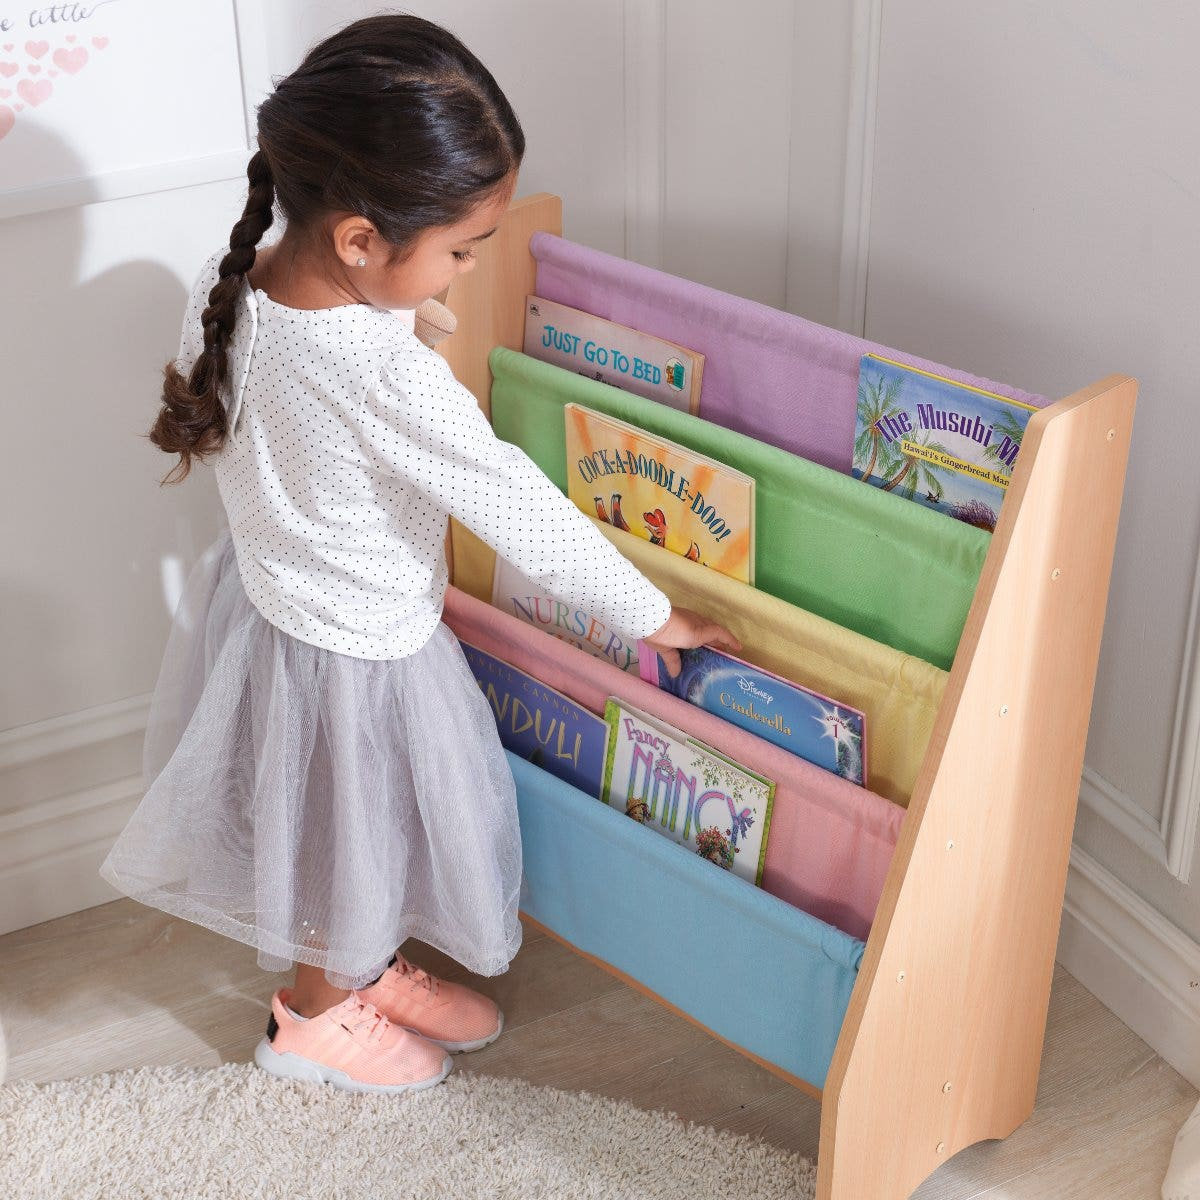 Soft canvas shelves and sturdy wood construction